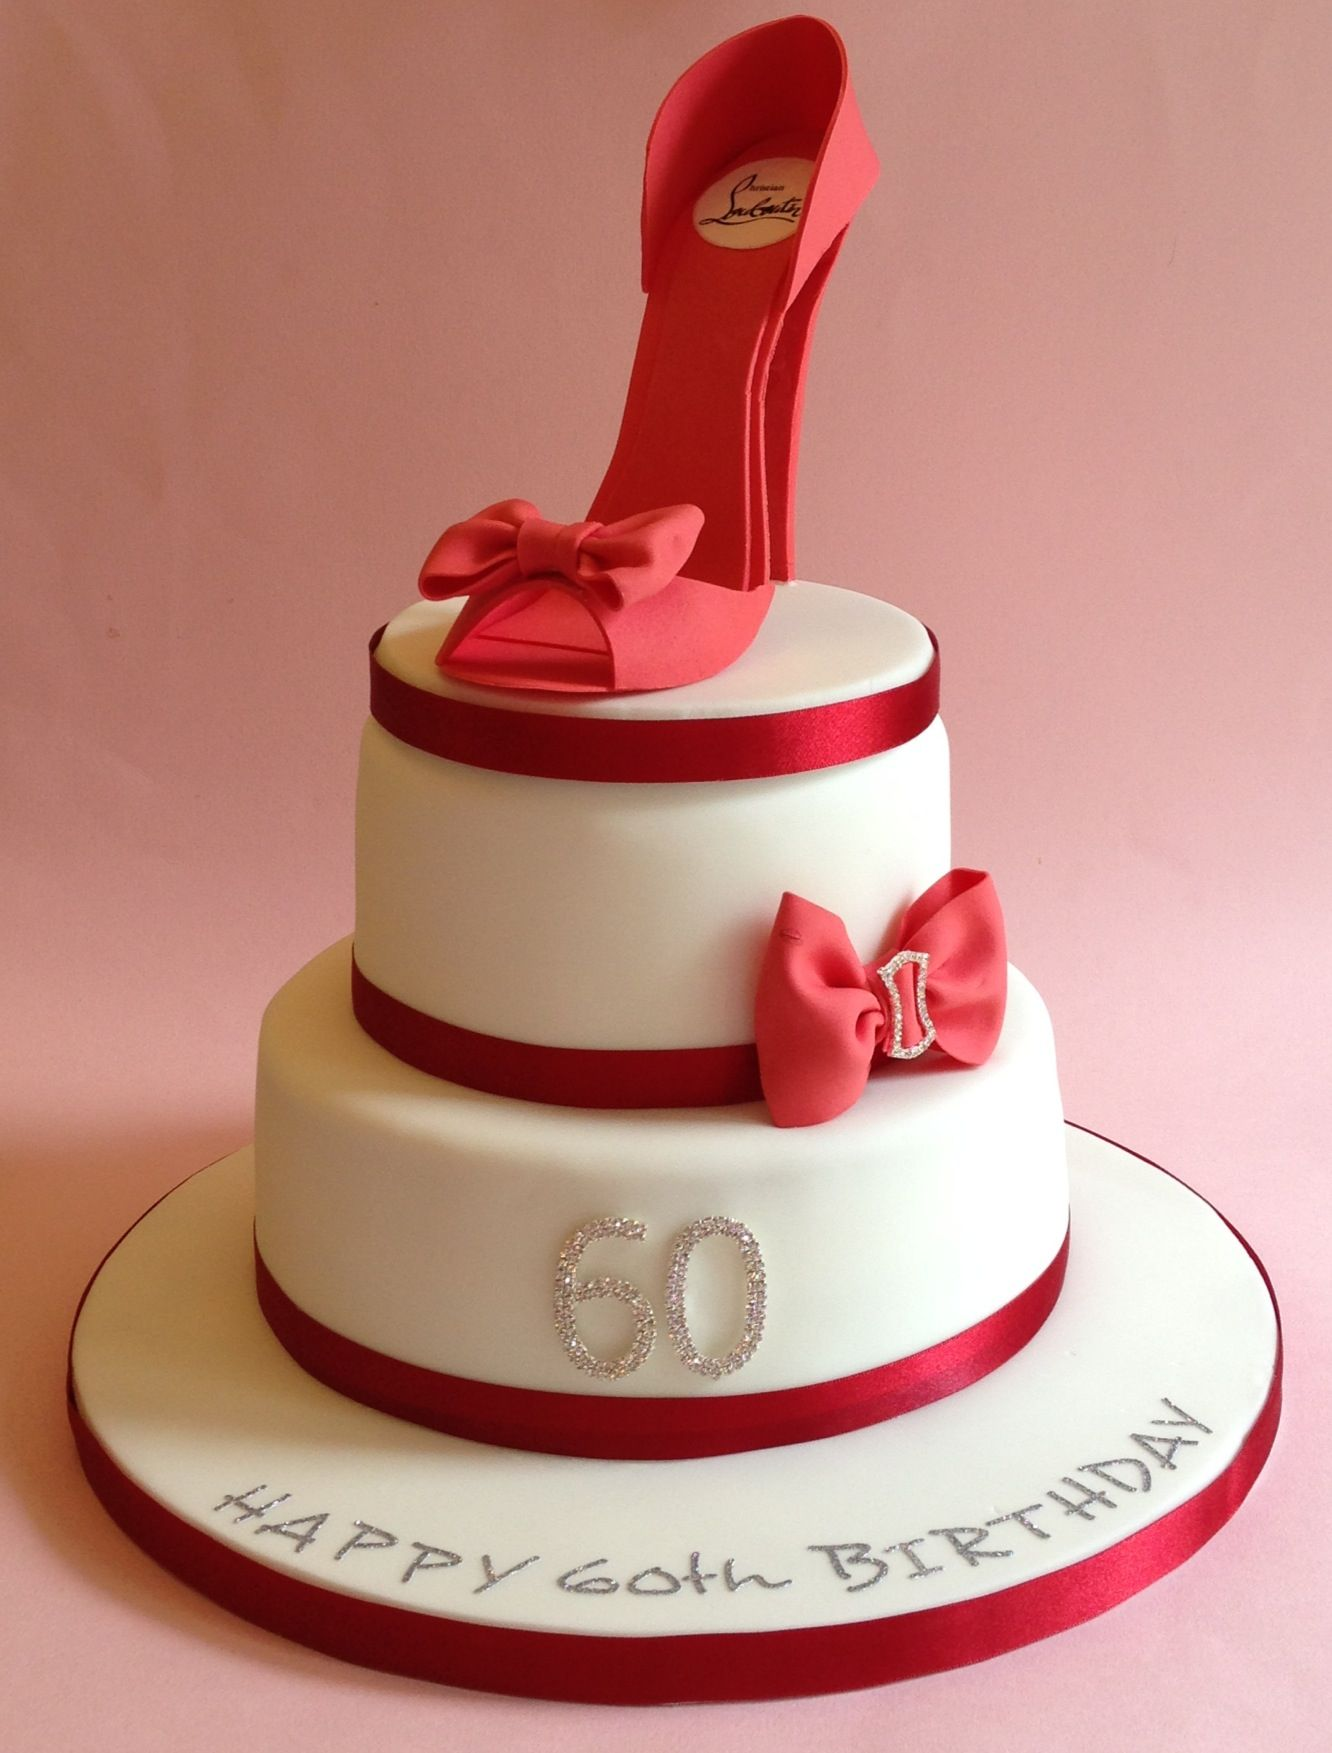 Shoe Themed 60th Birthday Cake Www Vintagehousebakery Co Uk With